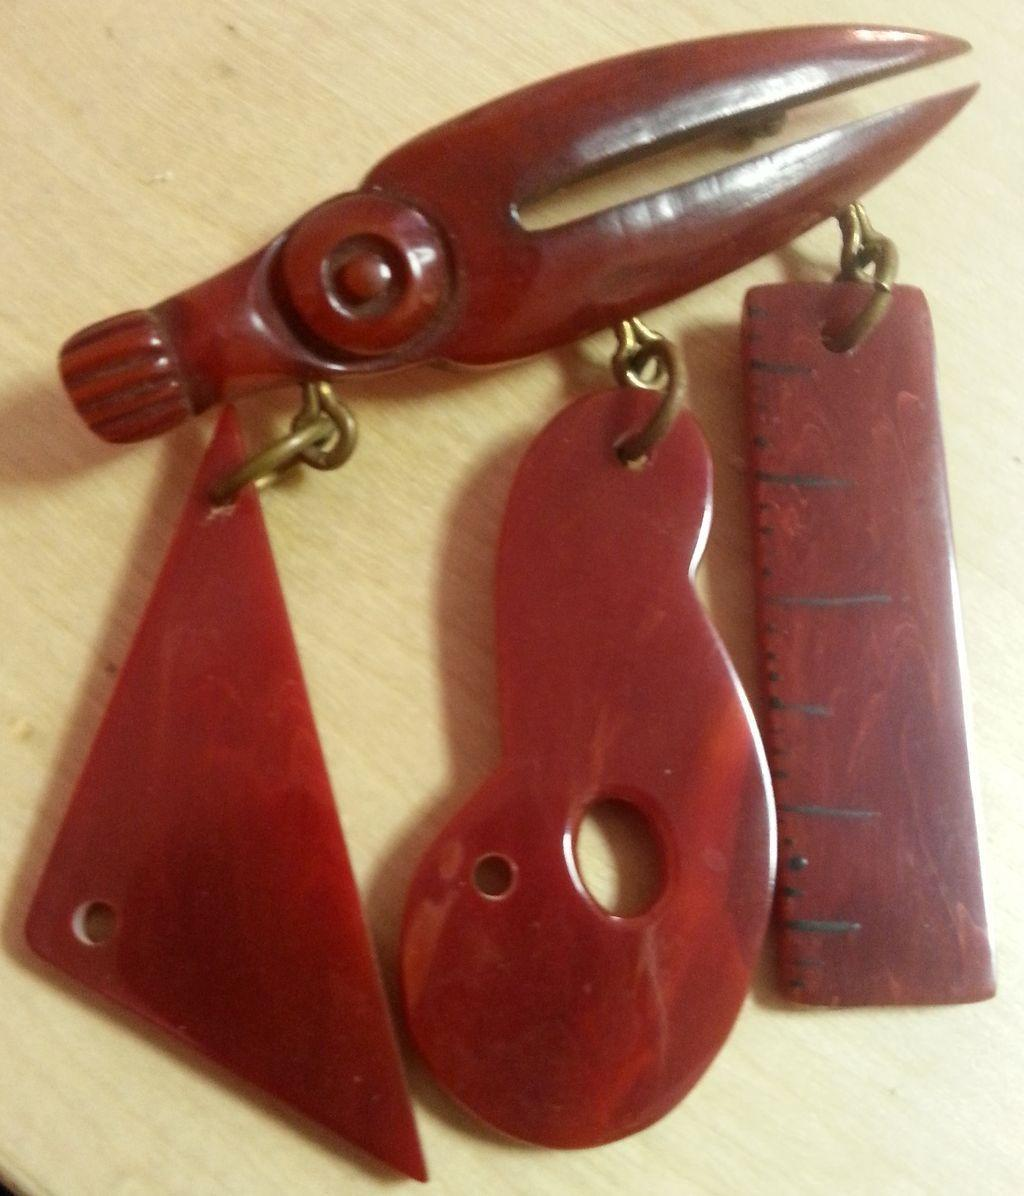 RARE Bakelite Figural Architect's Tools Brooch